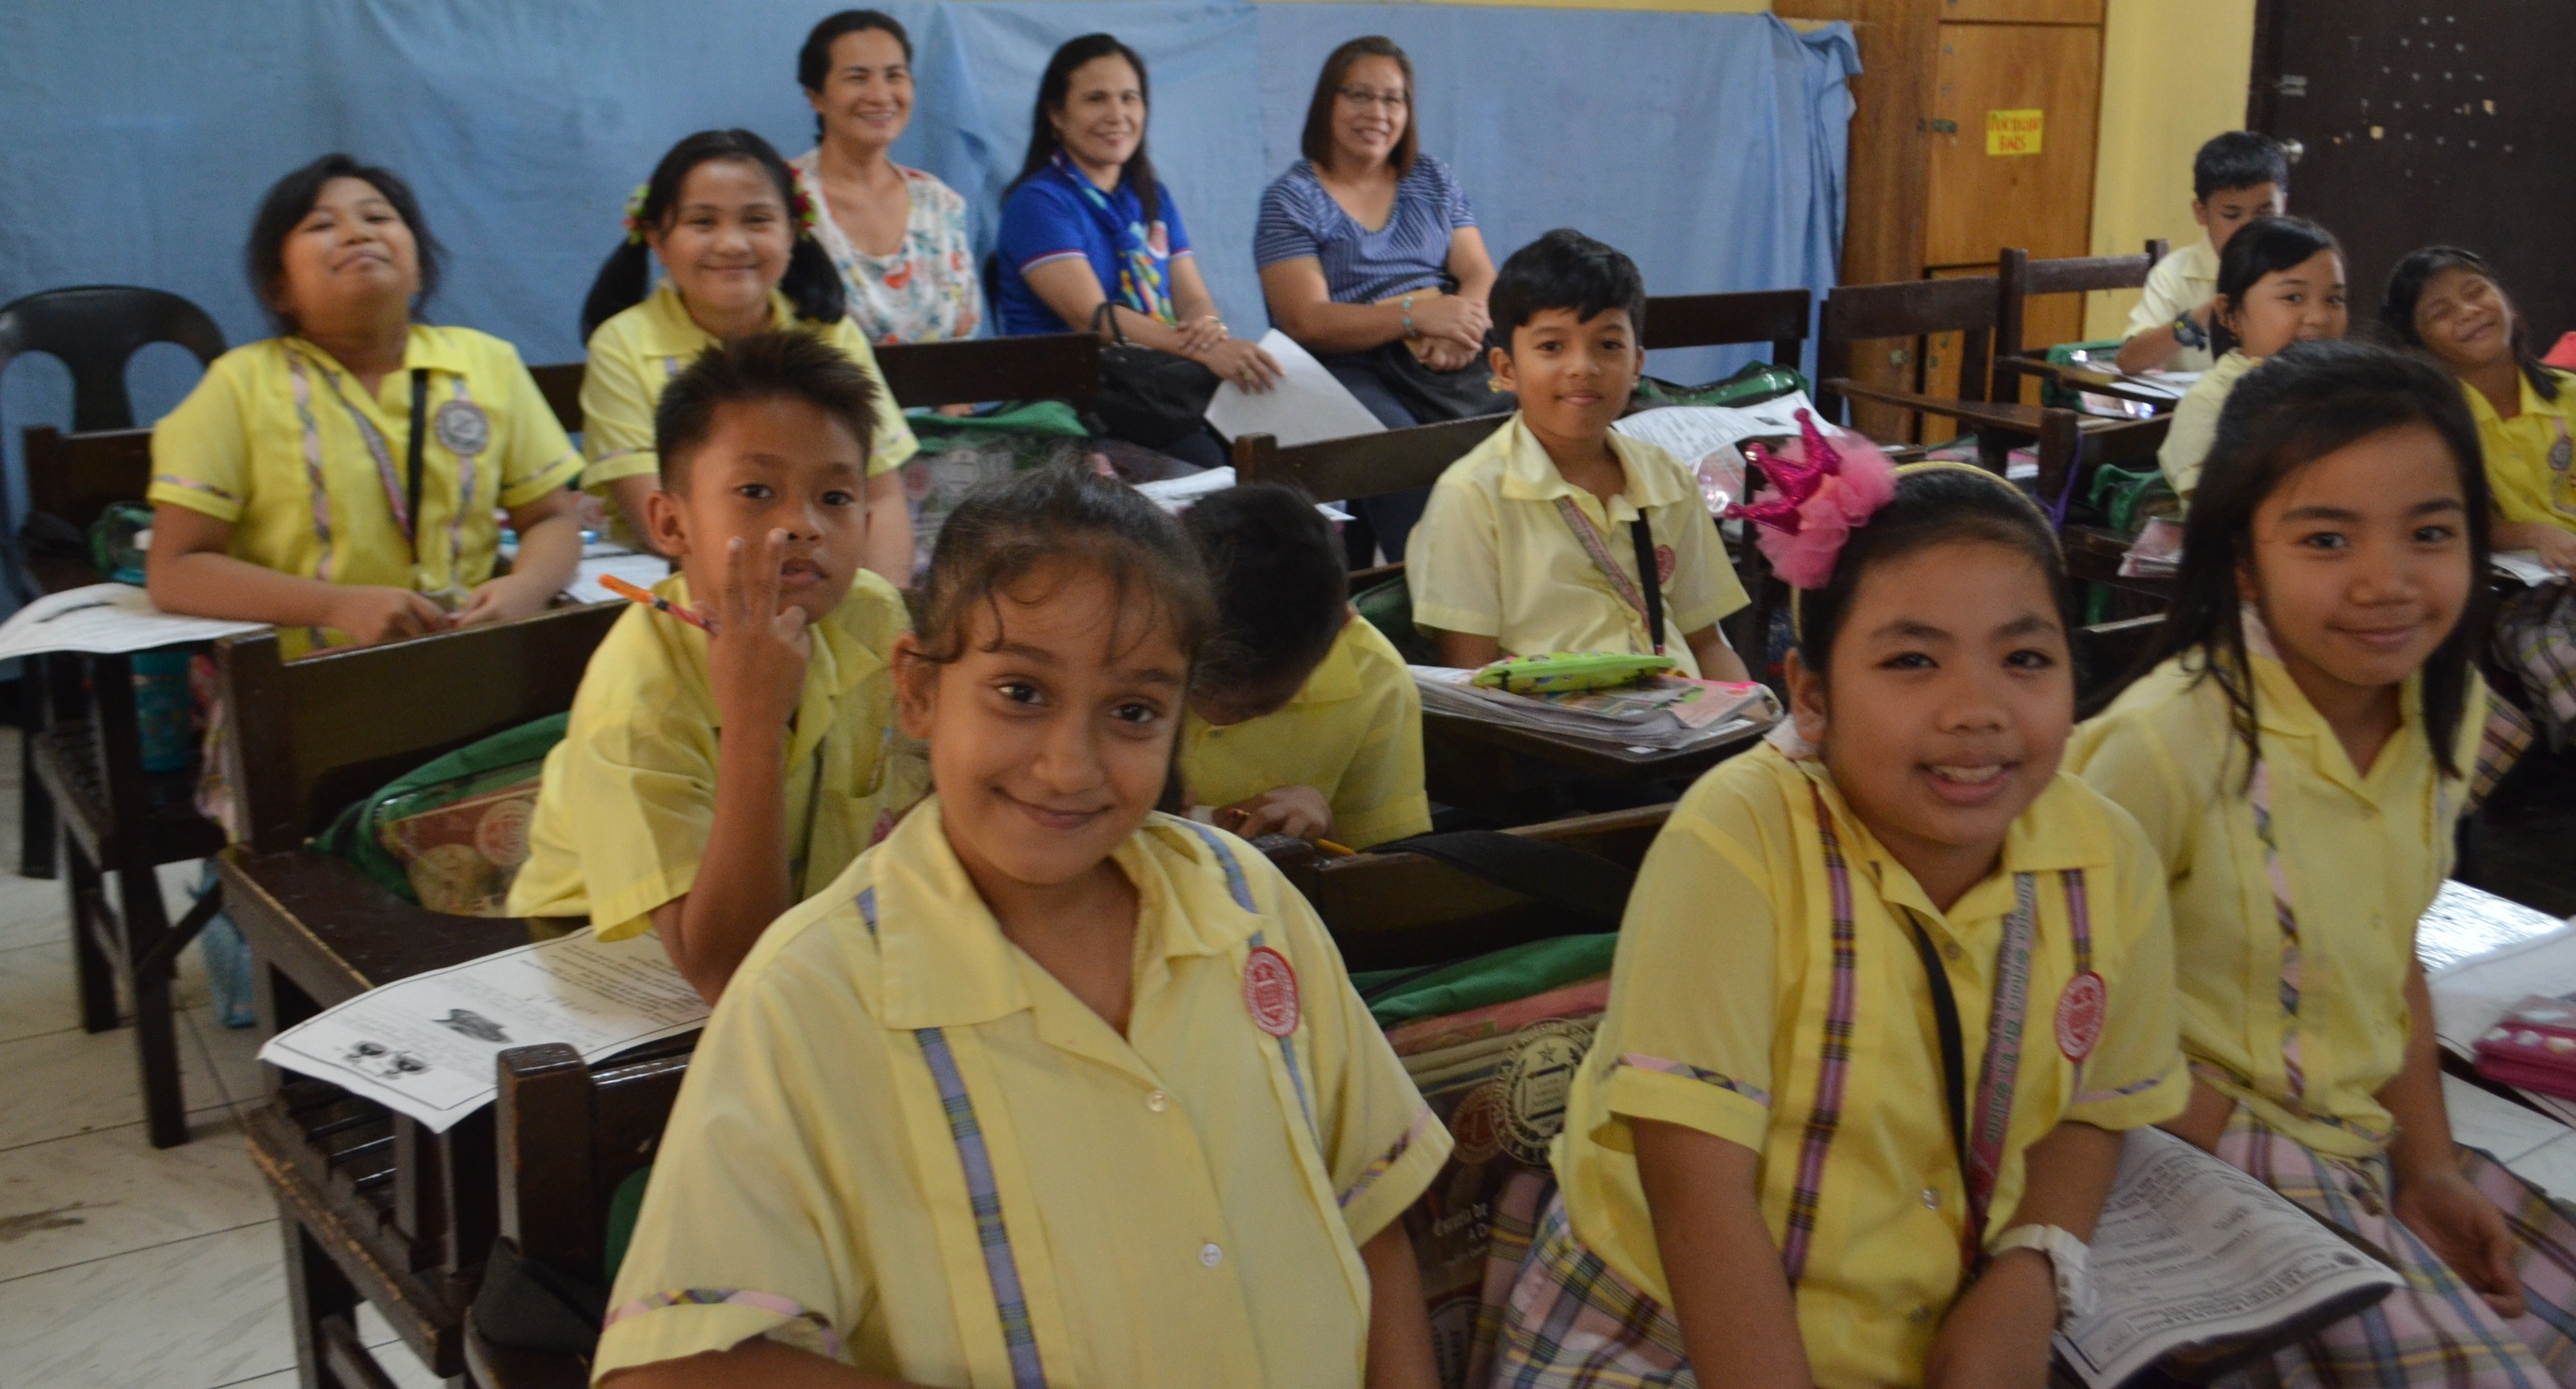 Students of La Salette School in Dagupan welcome LGU reps (back row) from different provinces and show them how the Dynamic Learning Program is being implemented in their classes.